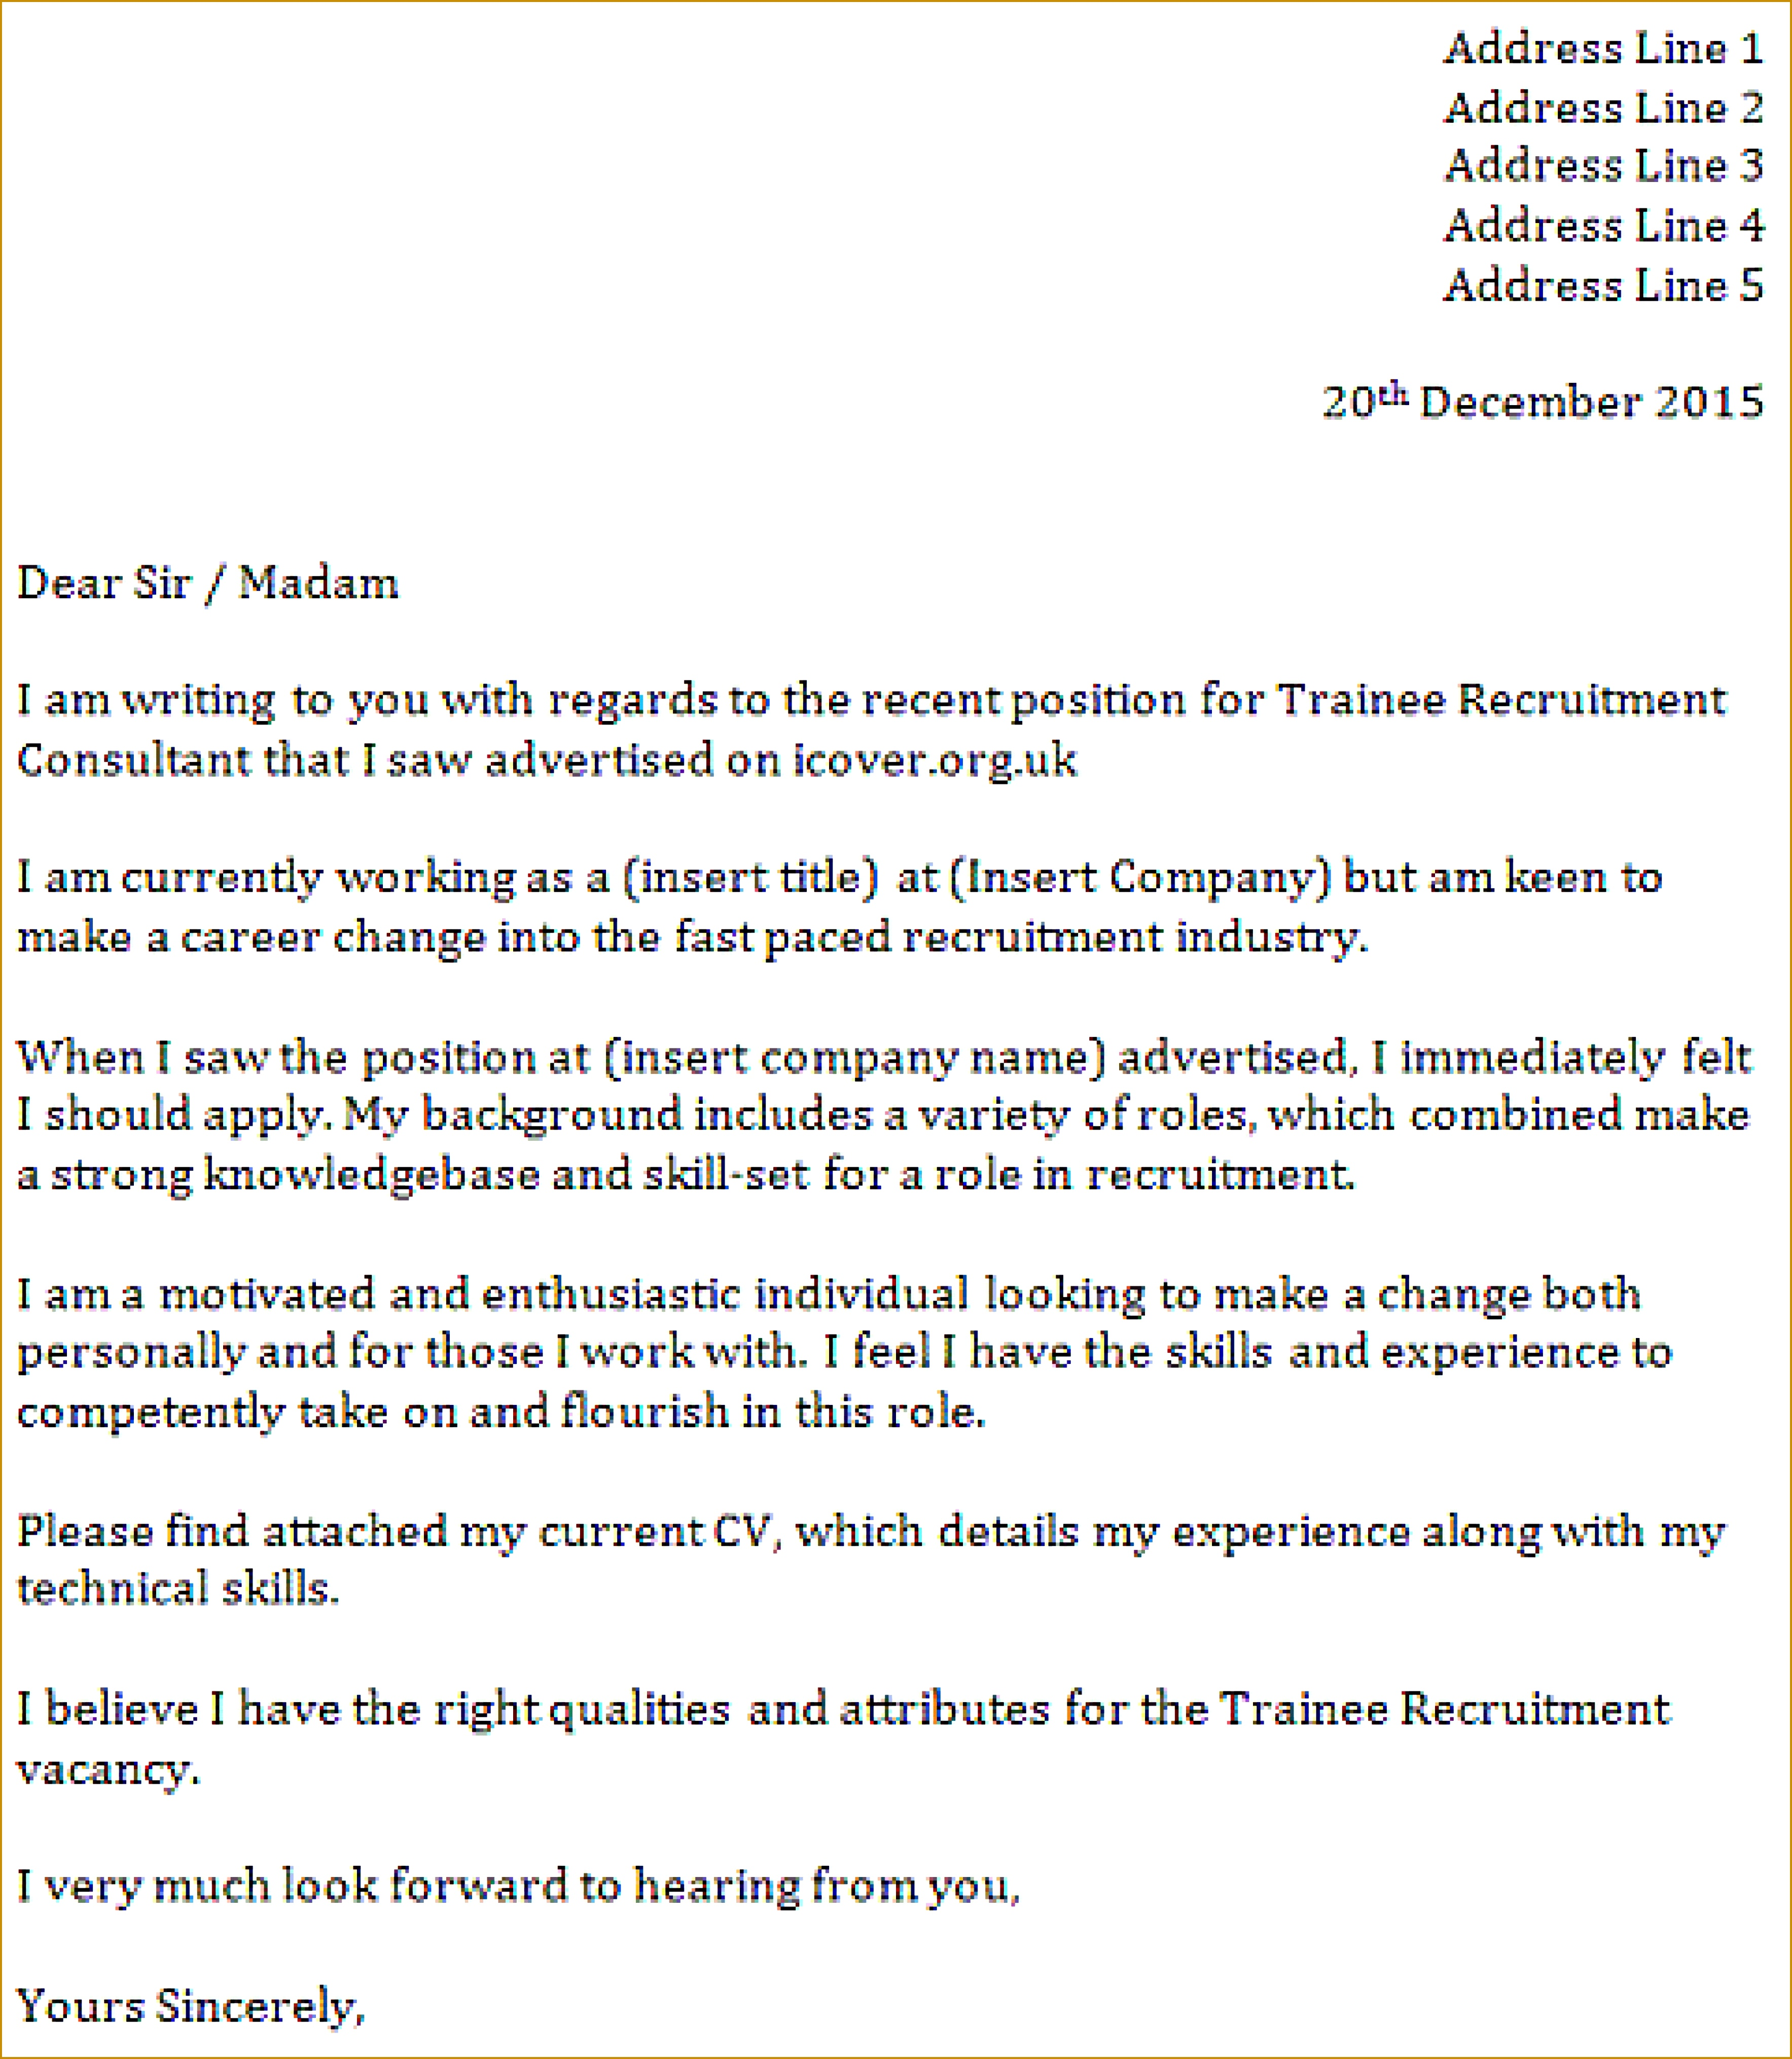 Format A Covering Letter Luxury who to Address Cover Letter to New Job Letter 0d Archives 40613534